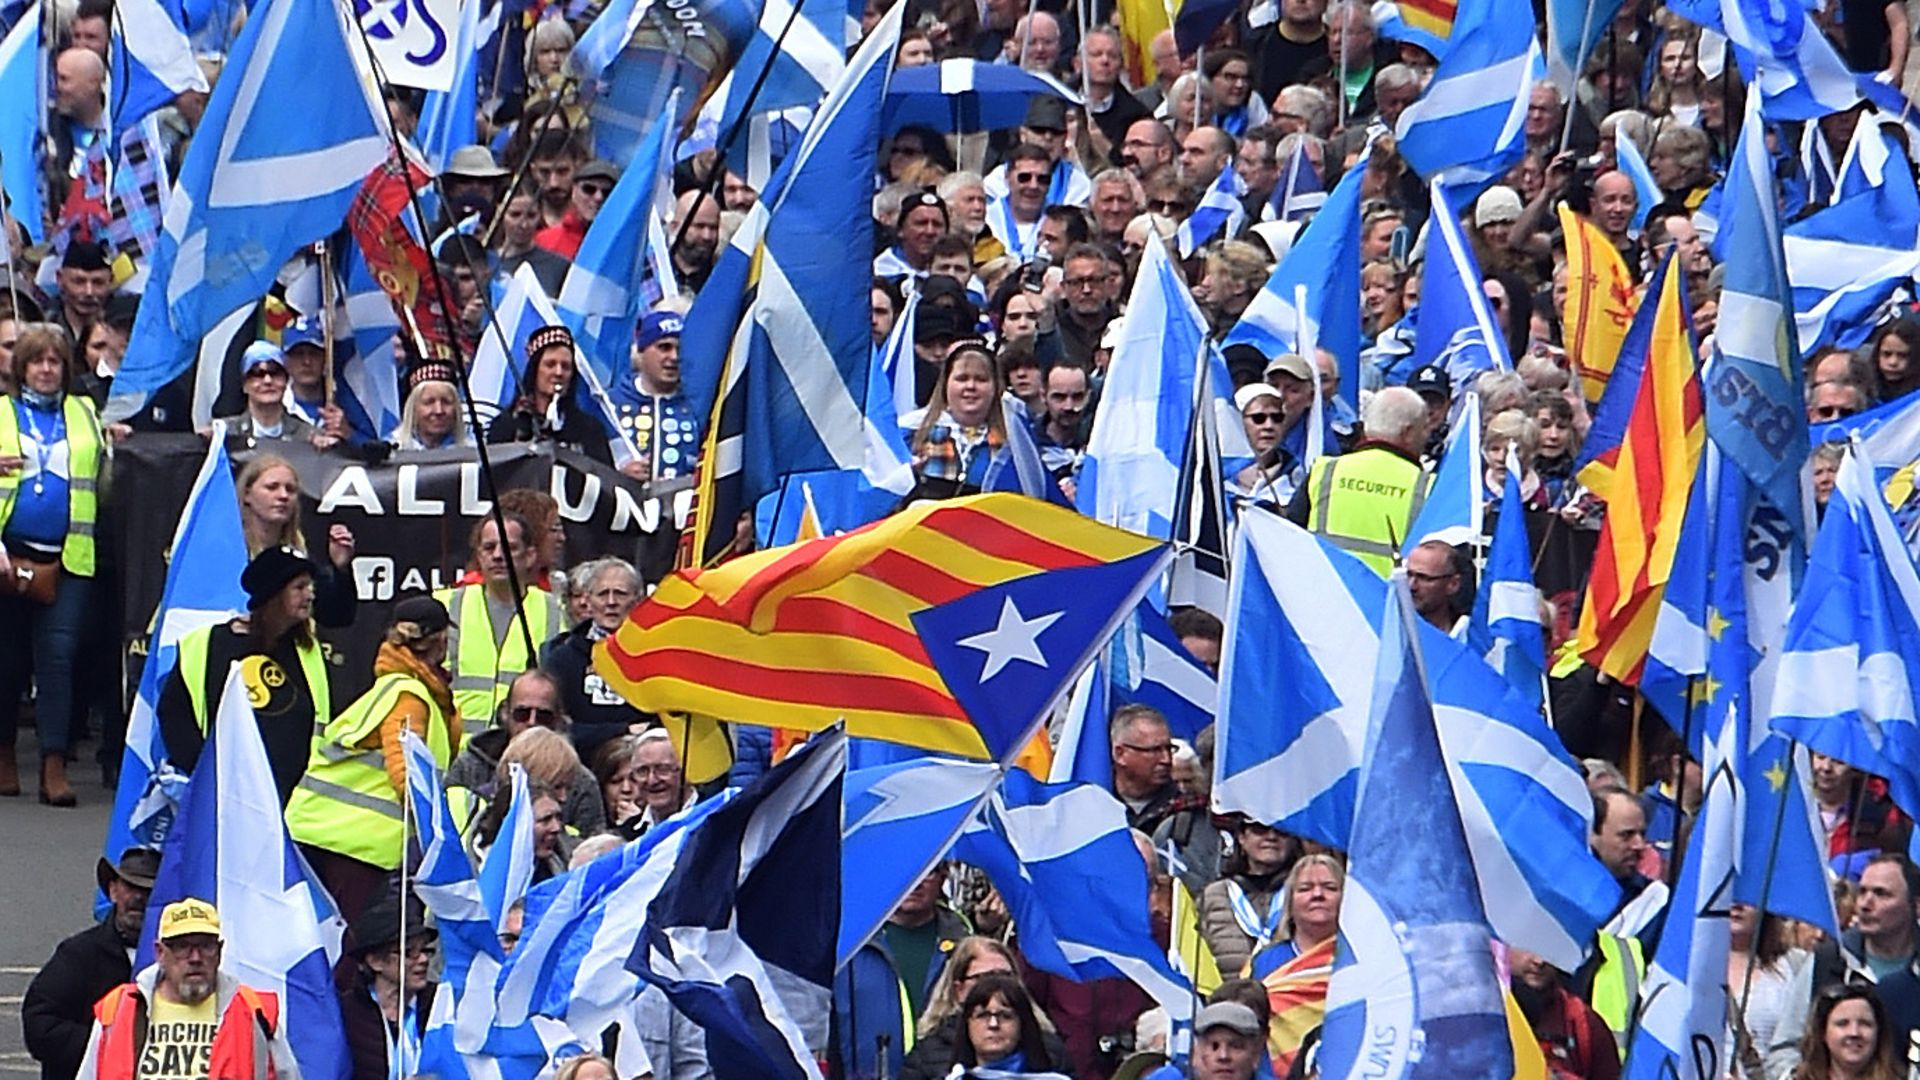 Catalan Estelada flags fly alongside Saltires at a pro-Scottish independence march in Glasgow in May, 2019 - Credit: AFP via Getty Images